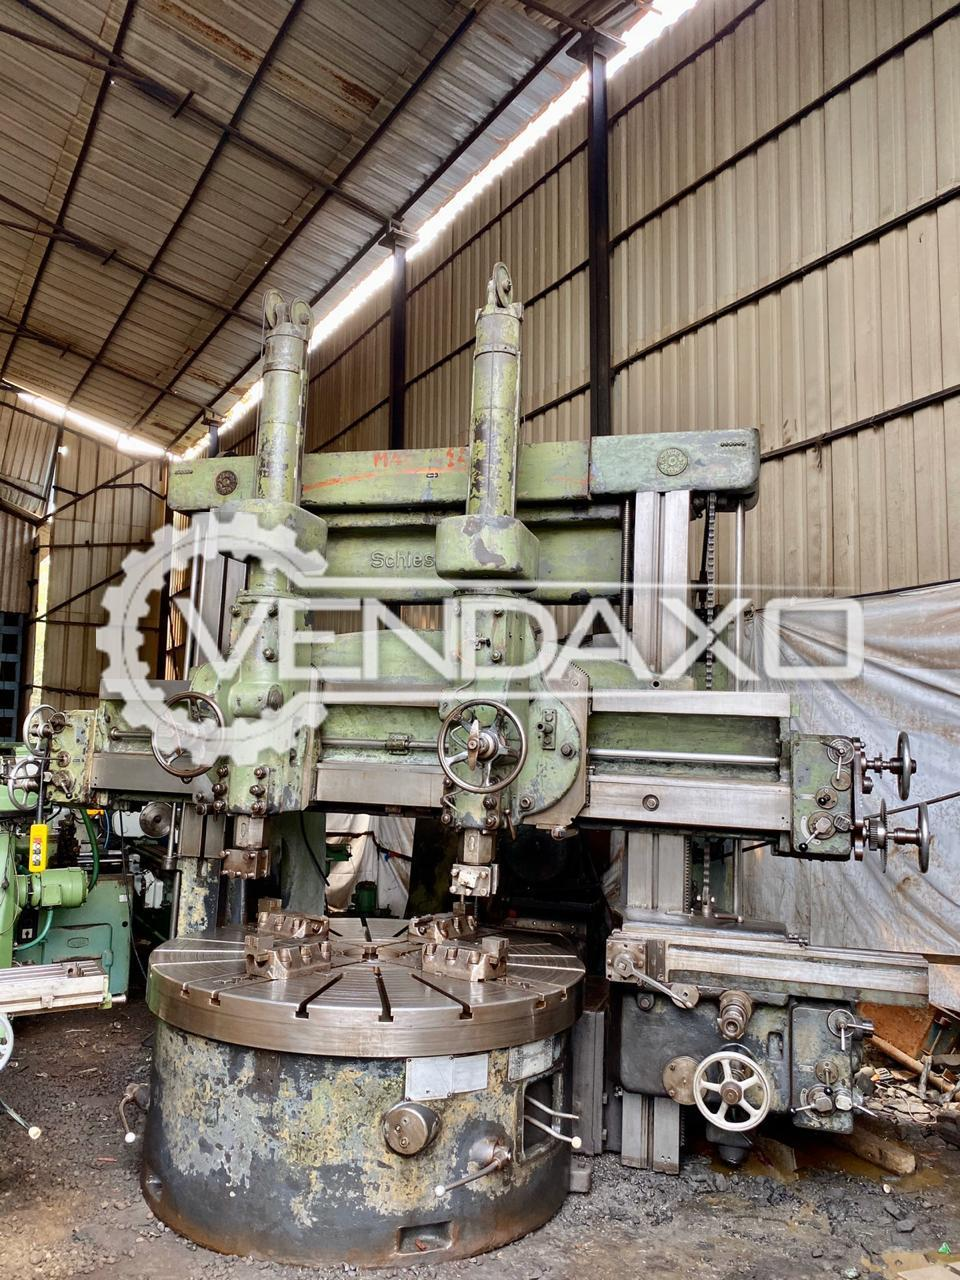 Used Lathes for Sale | Buy or Sell Used Lathes Online - Vendaxo